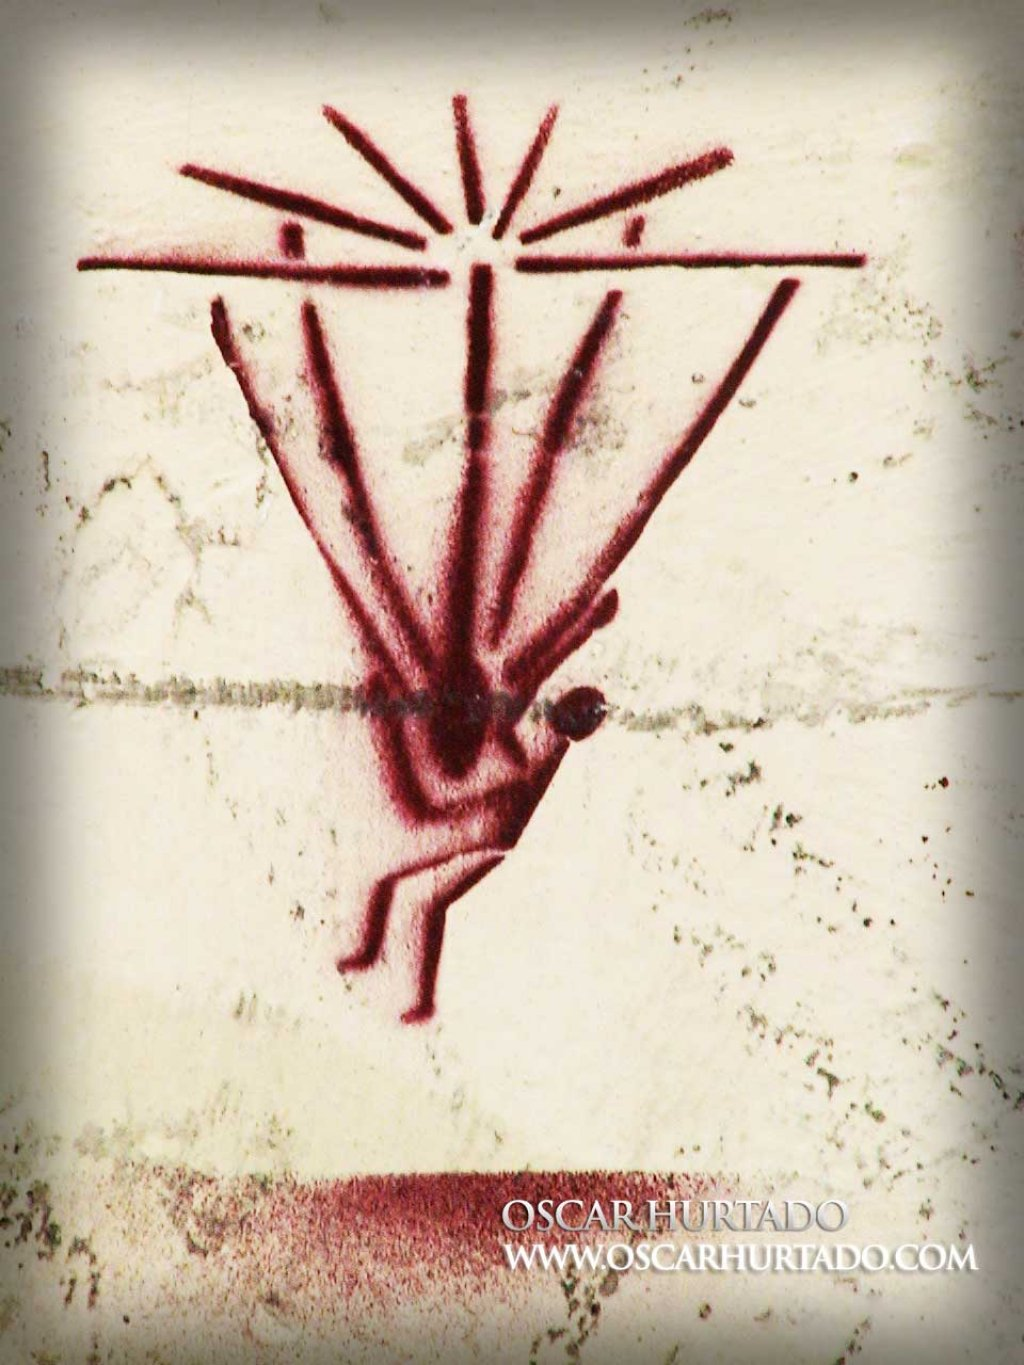 Red graffiti portraying a strange figure being abducted by aliens or attached to a kind of parachute